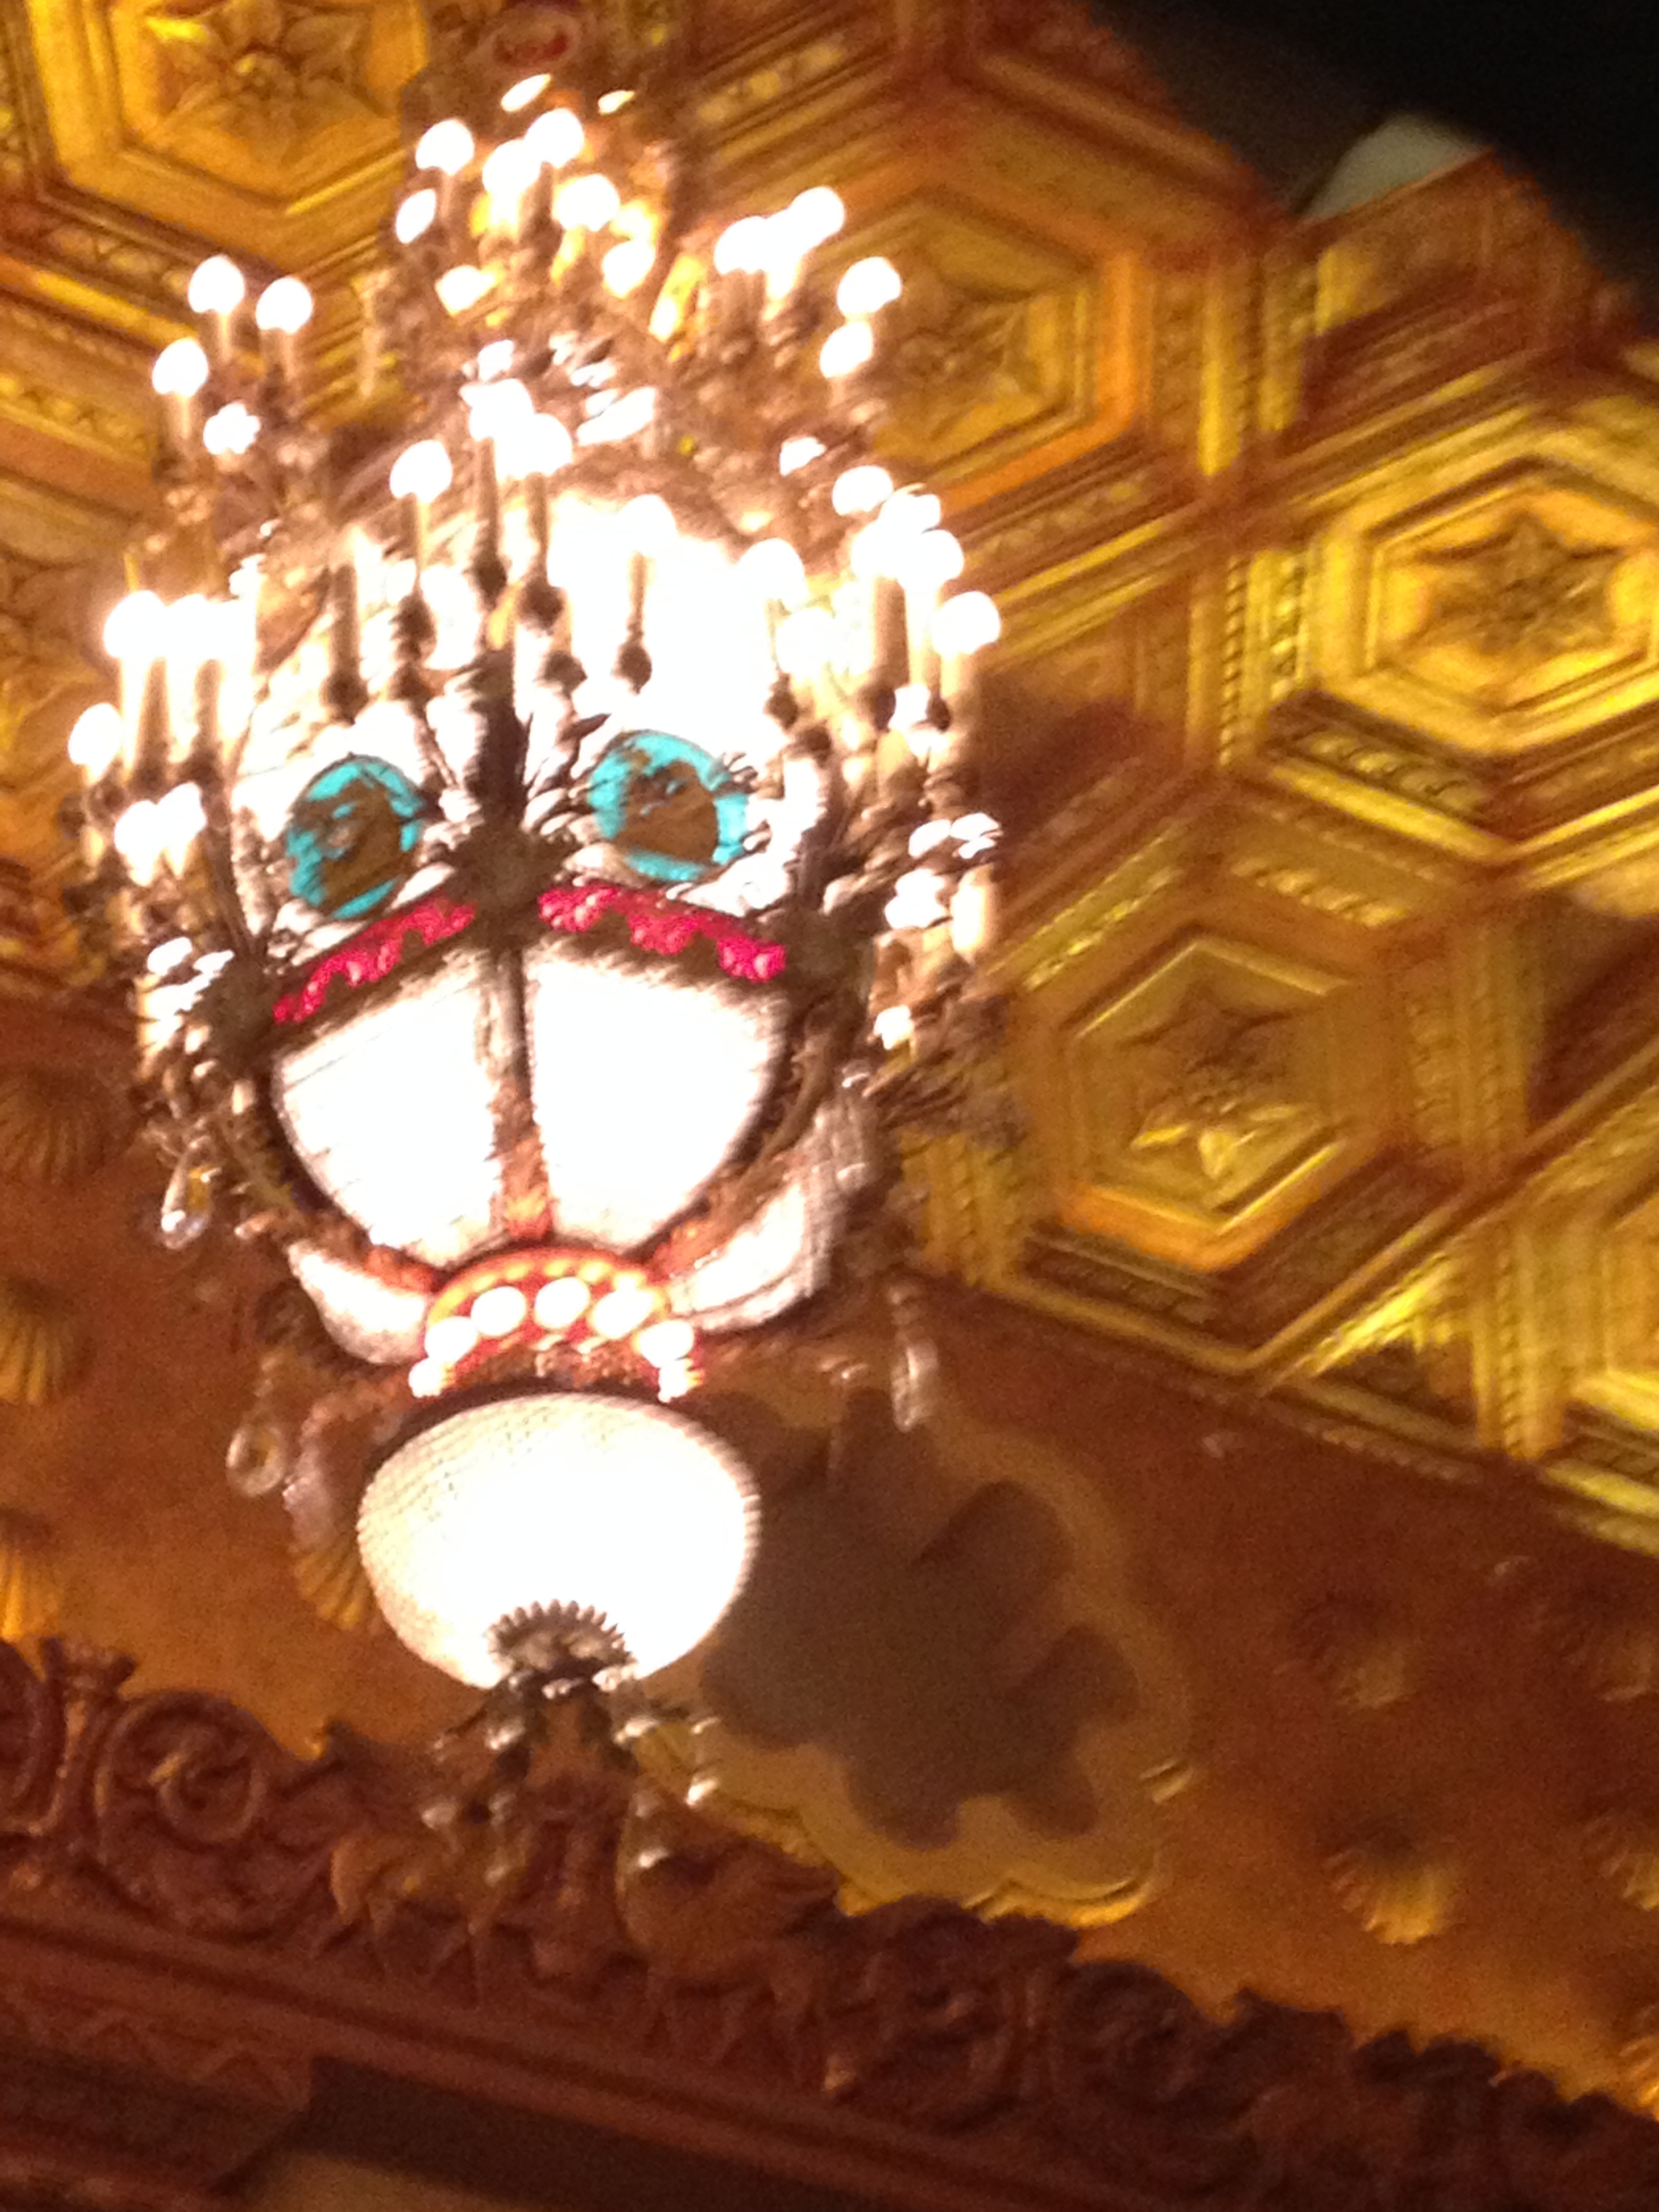 Image of vintage chandalier at the Alabama Theatre